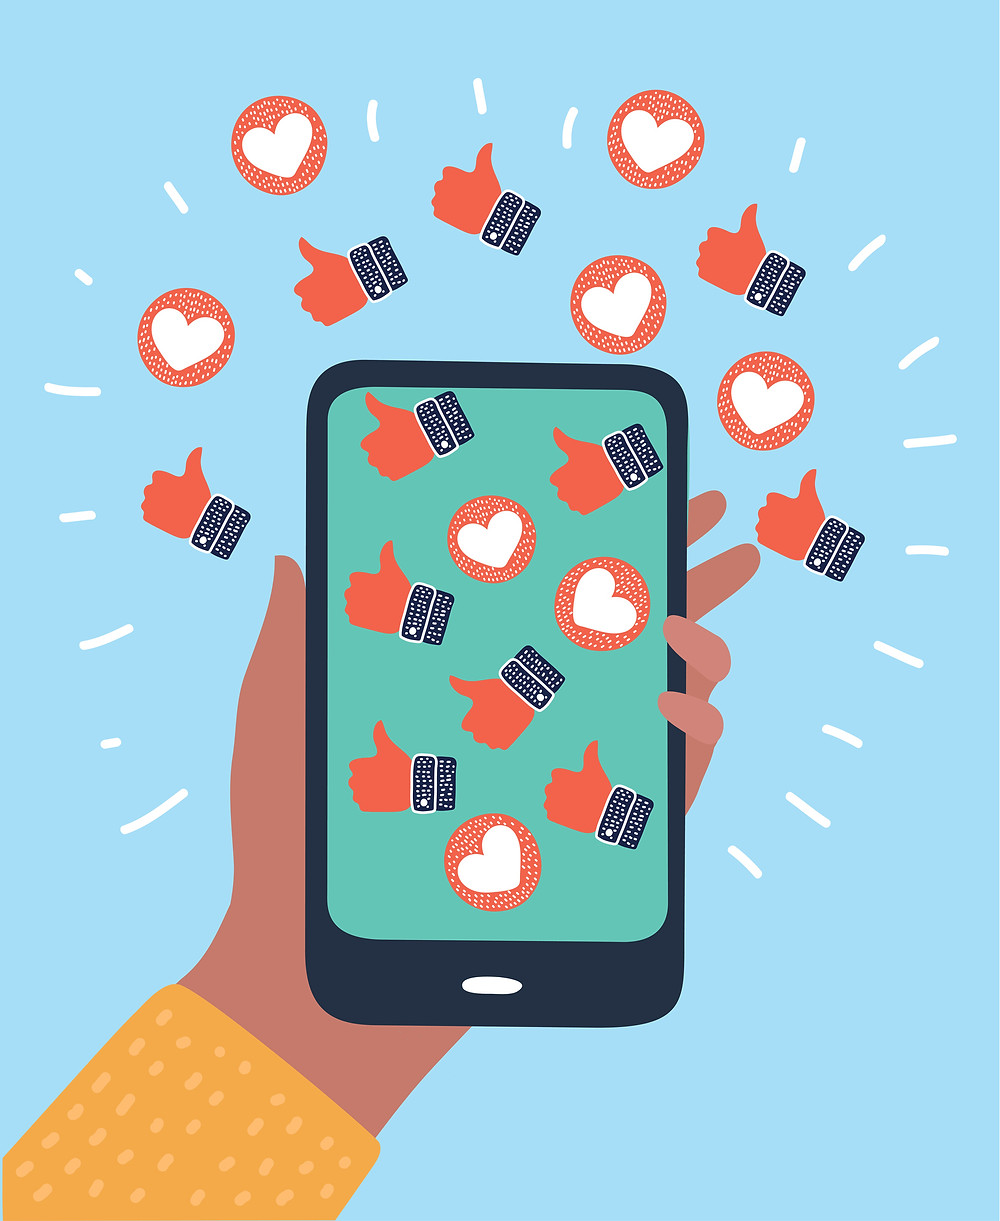 like and love reactions to social media post - instagram tips for marketing